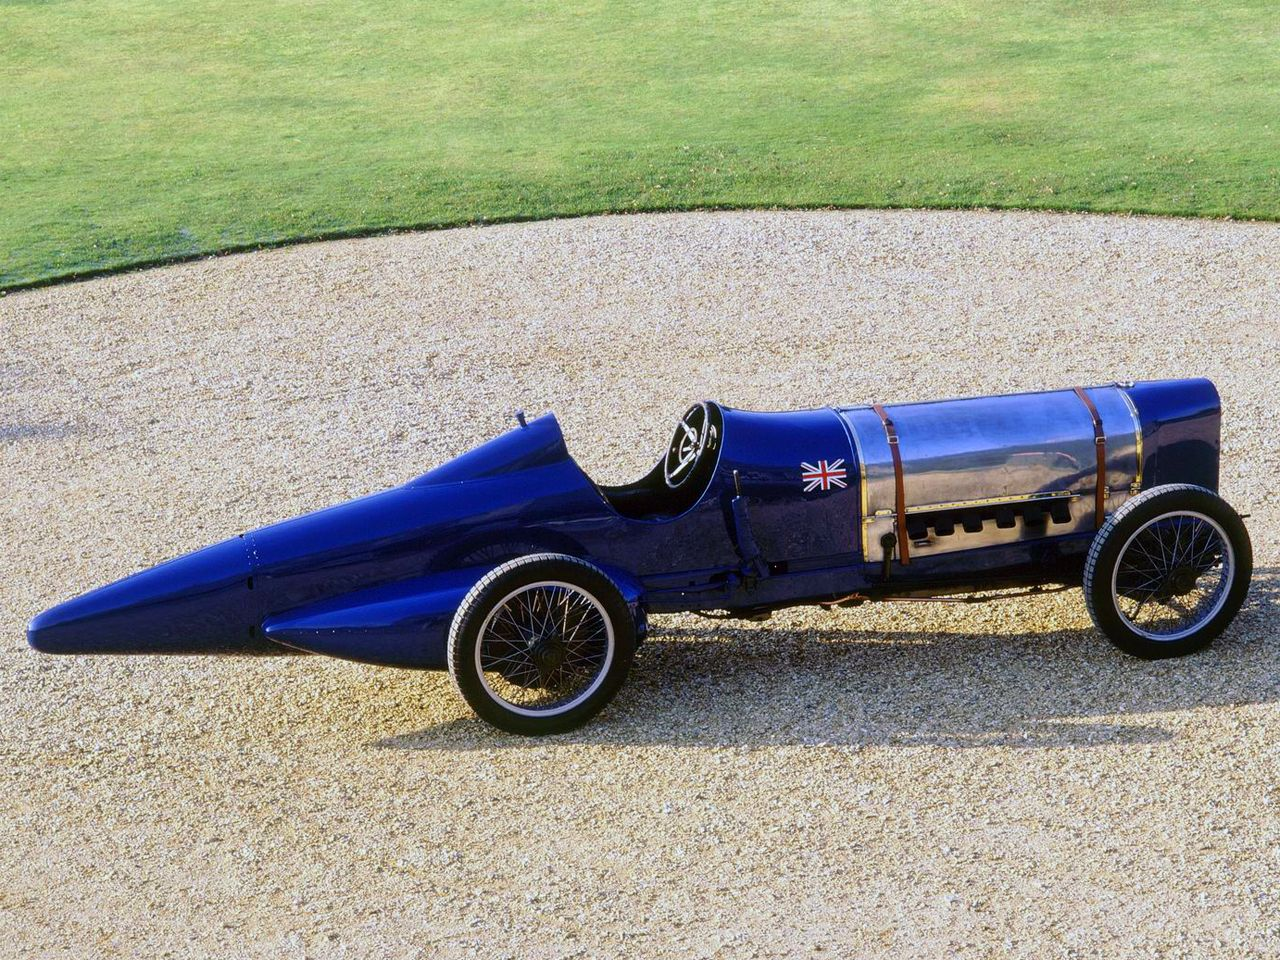 1925 Sunbeam Bluebird Land Speed Record Car - Wasn\'t this Malcolm ...